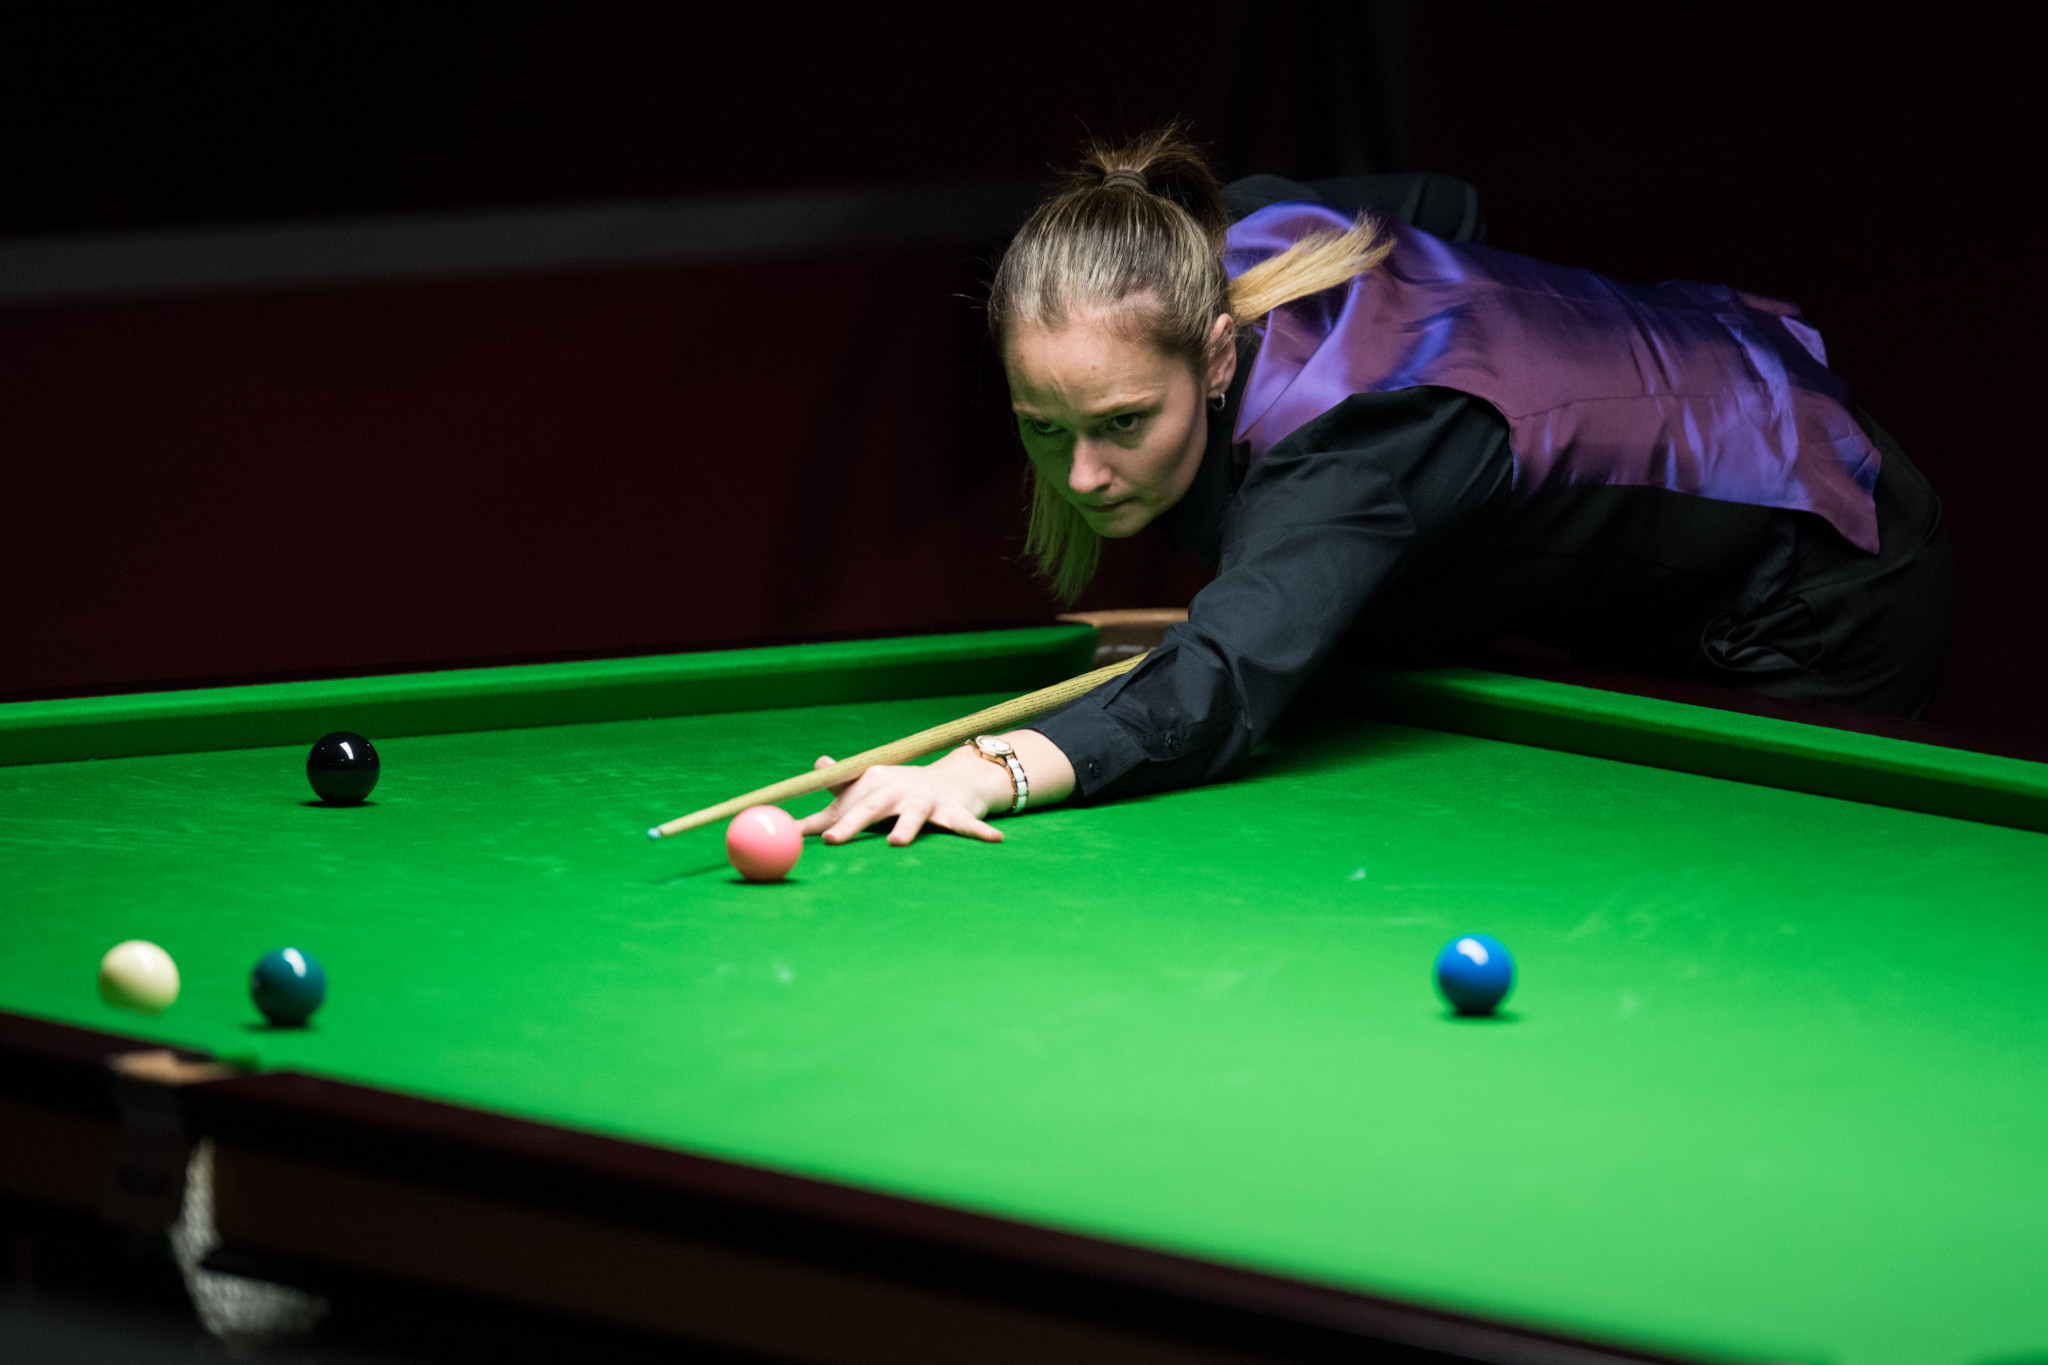 Evans and Ng advance to last 16 with unbeaten records at World Women's Snooker Championship